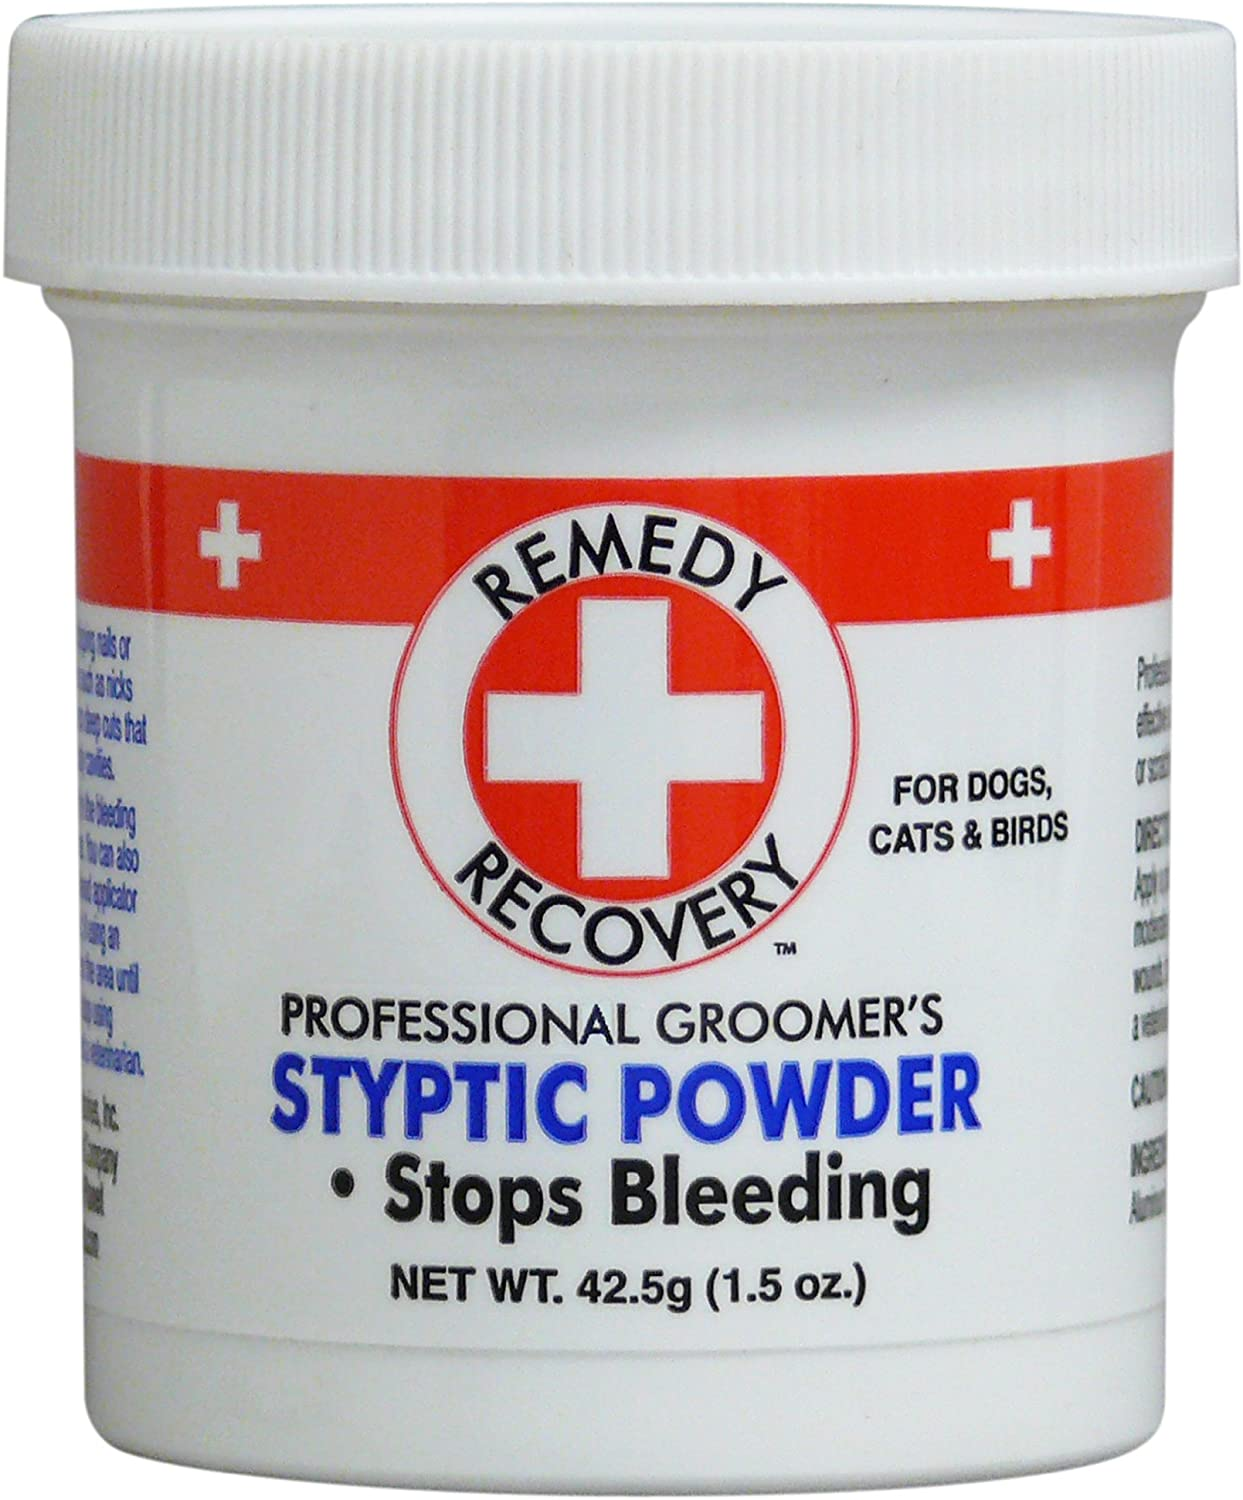 Amazon.com: DOGSWELL Remedy+Recovery Styptic Blood Stopper Powder for Dogs  & Cats 1.5 oz. Container: Pet Supplies